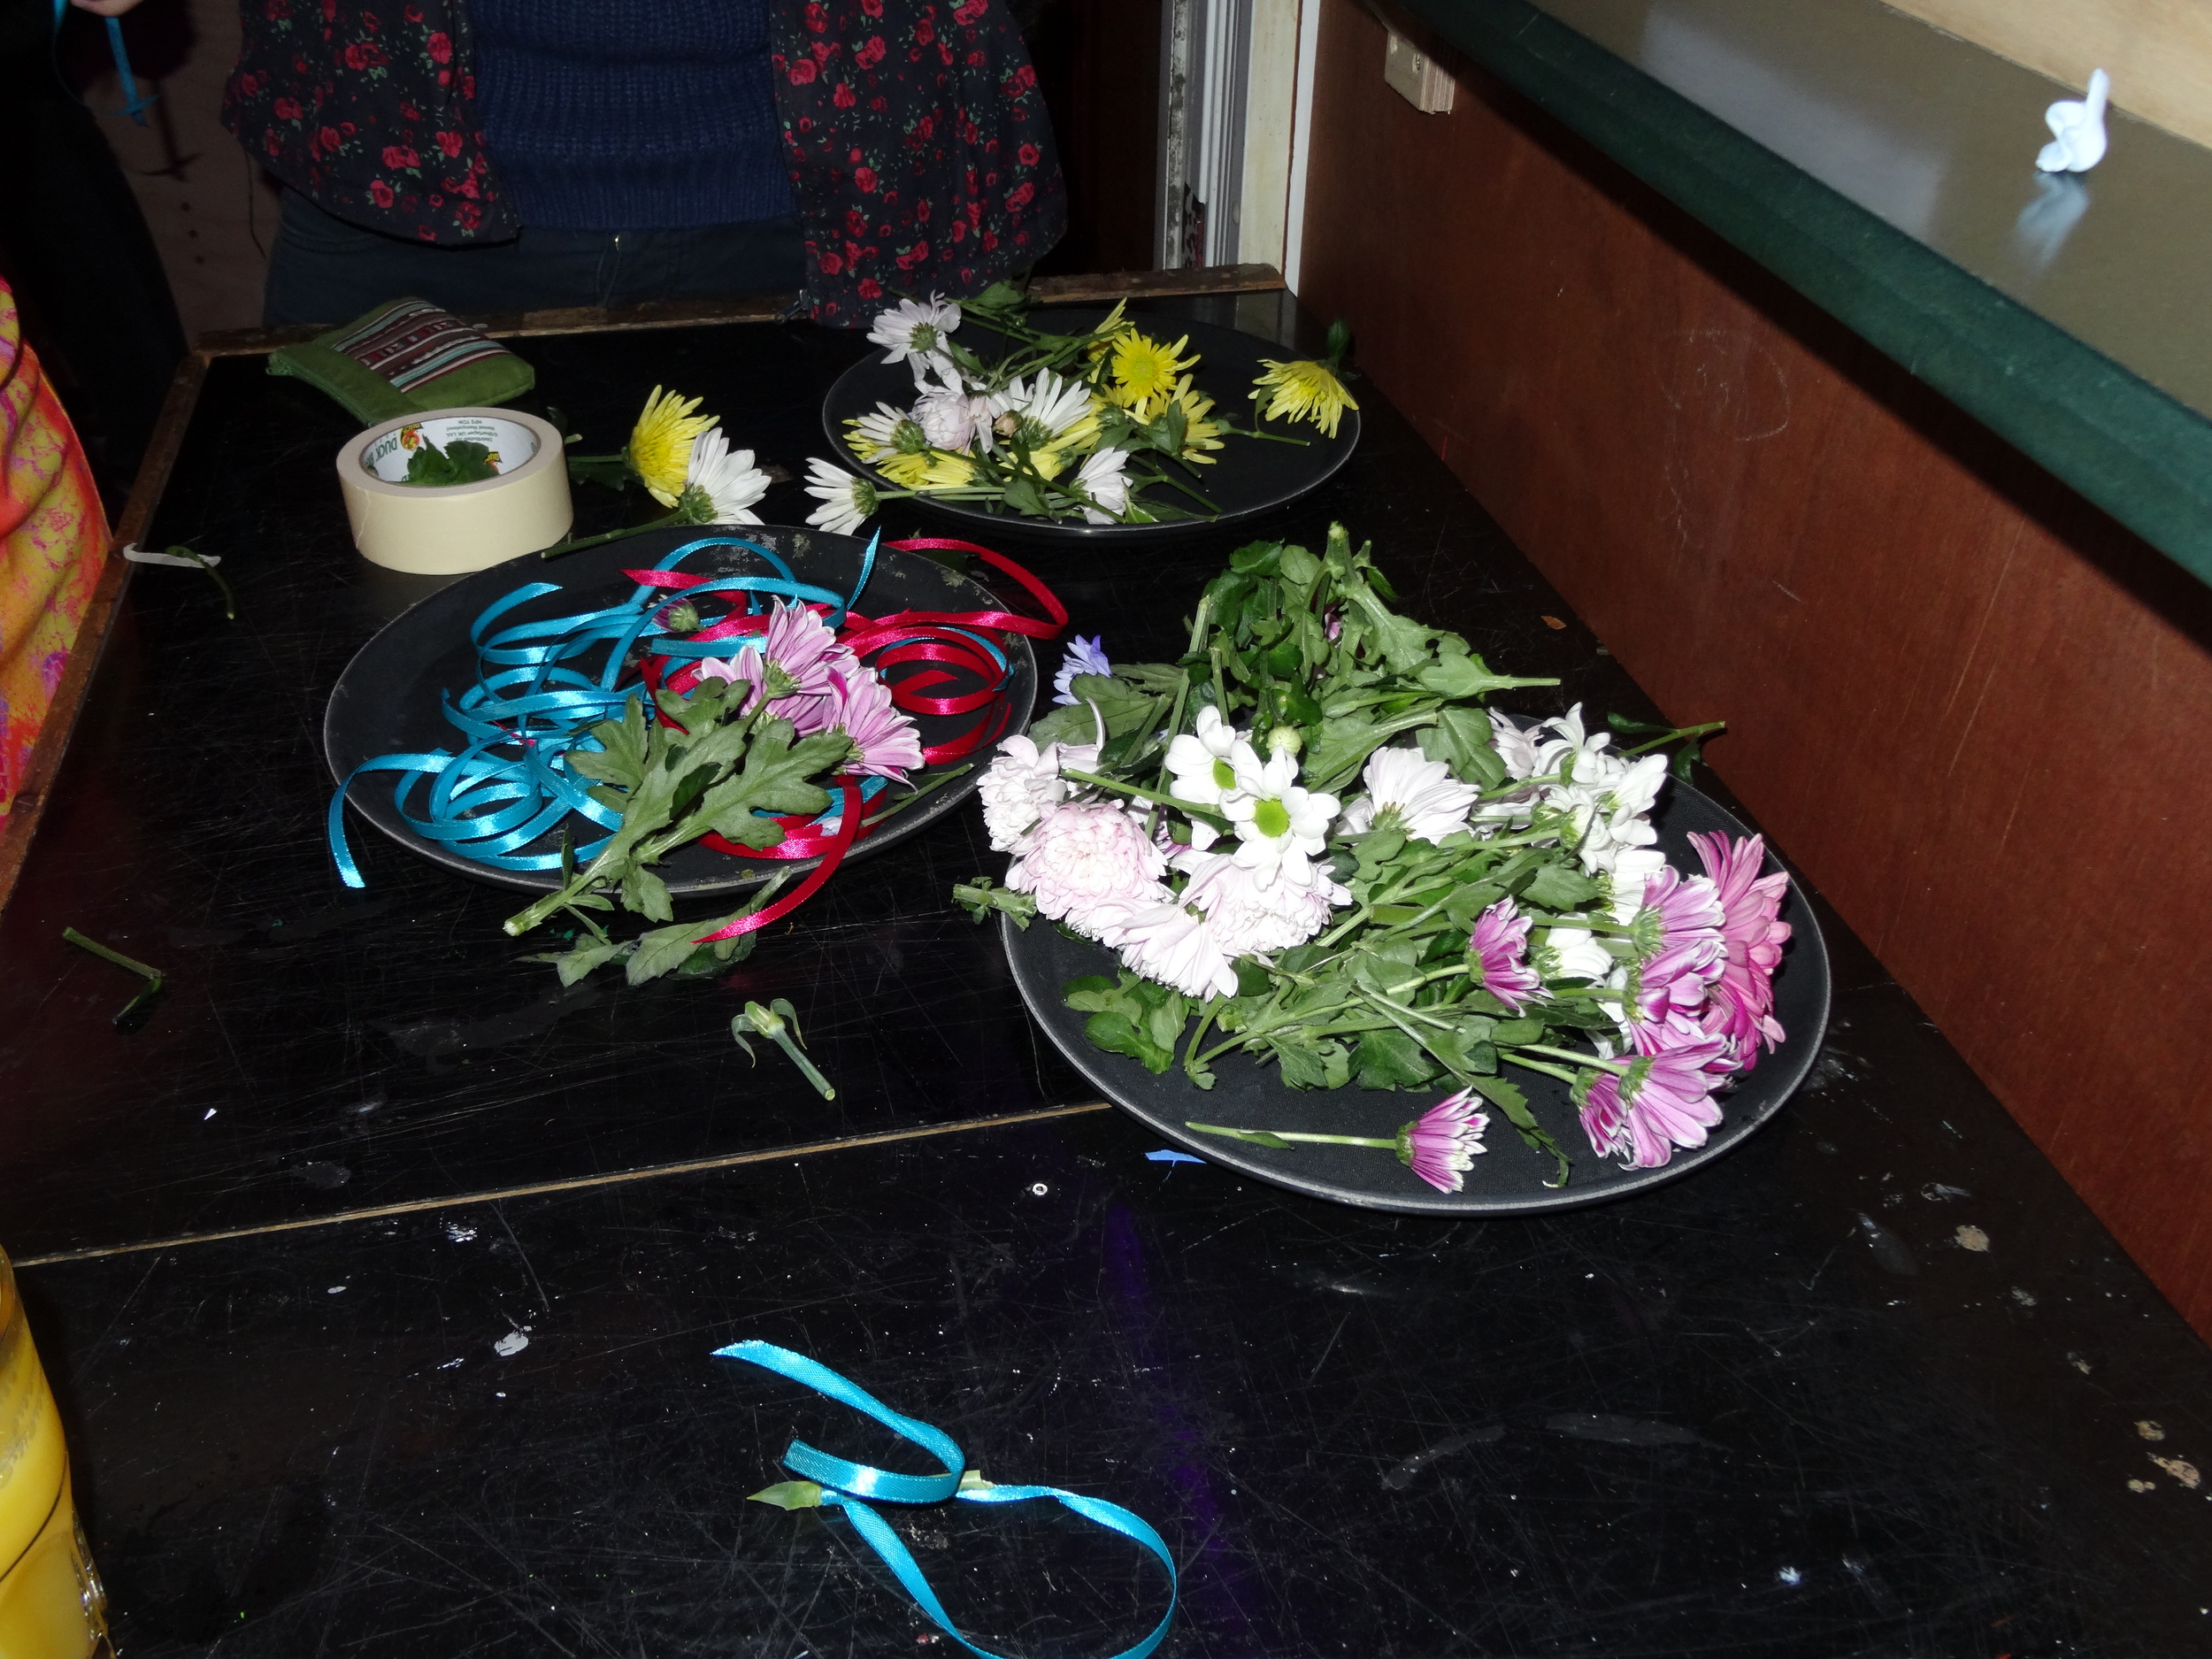 Flower corsages